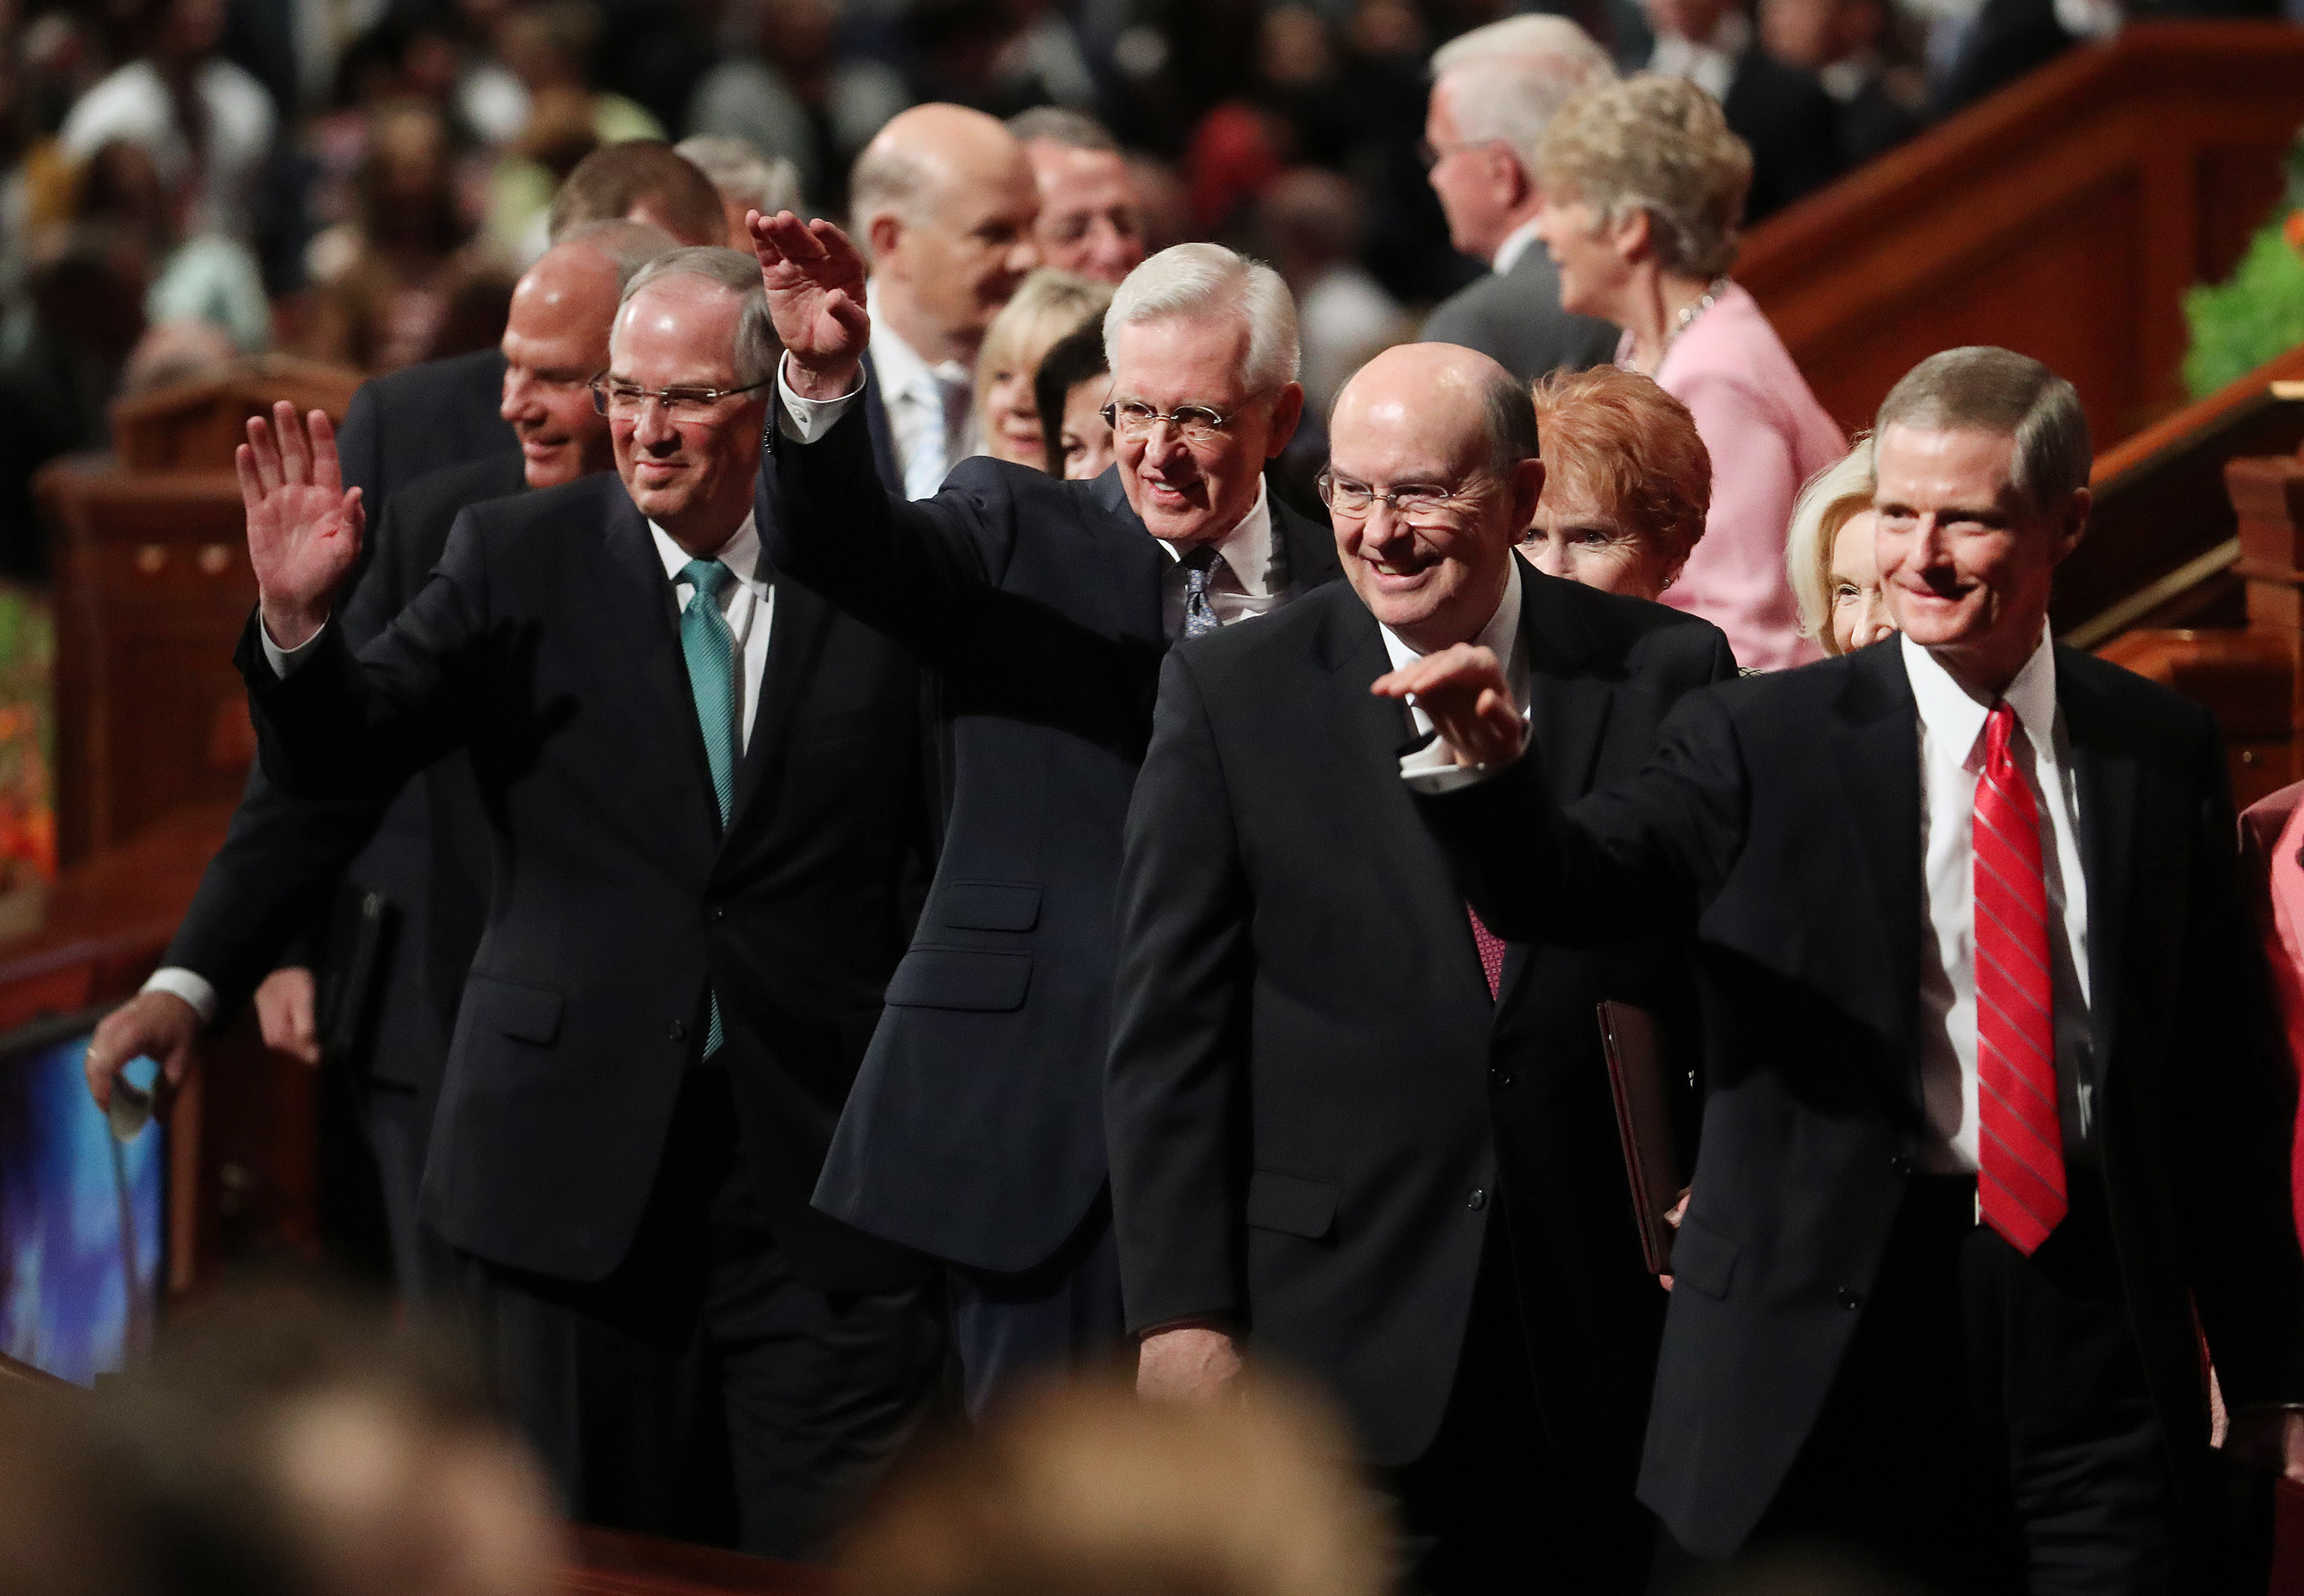 Members of the Quorum of the Twelve Apostles wave to attendees after the Sunday morning session of the 189th Annual General Conference of The Church of Jesus Christ of Latter-day Saints in the Conference Center in Salt Lake City on Sunday, April 7, 2019.